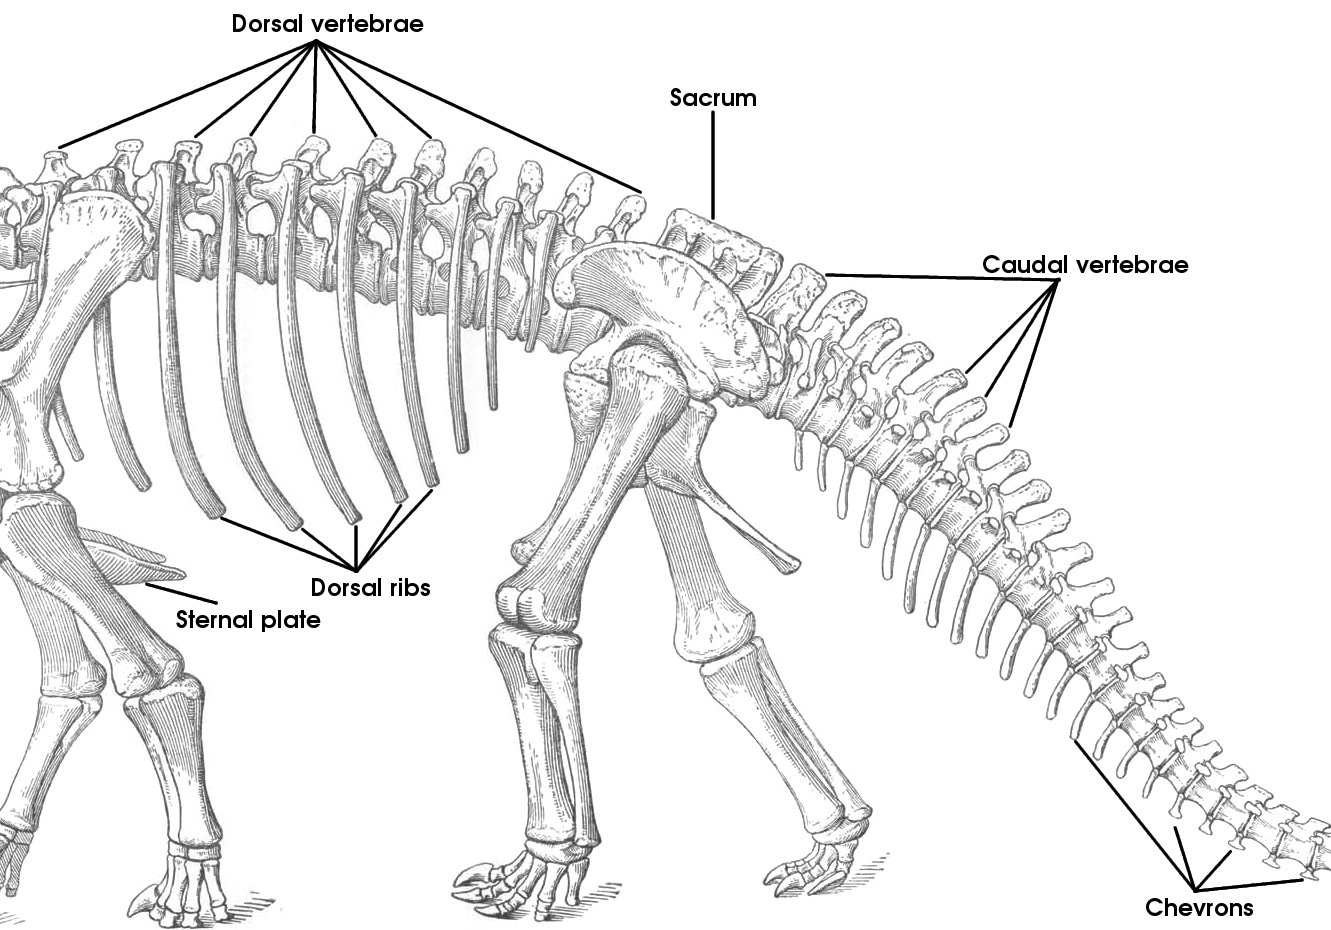 GEOL 104 Our Bodies, Our Selves: Introduction to Vertebrate Osteology